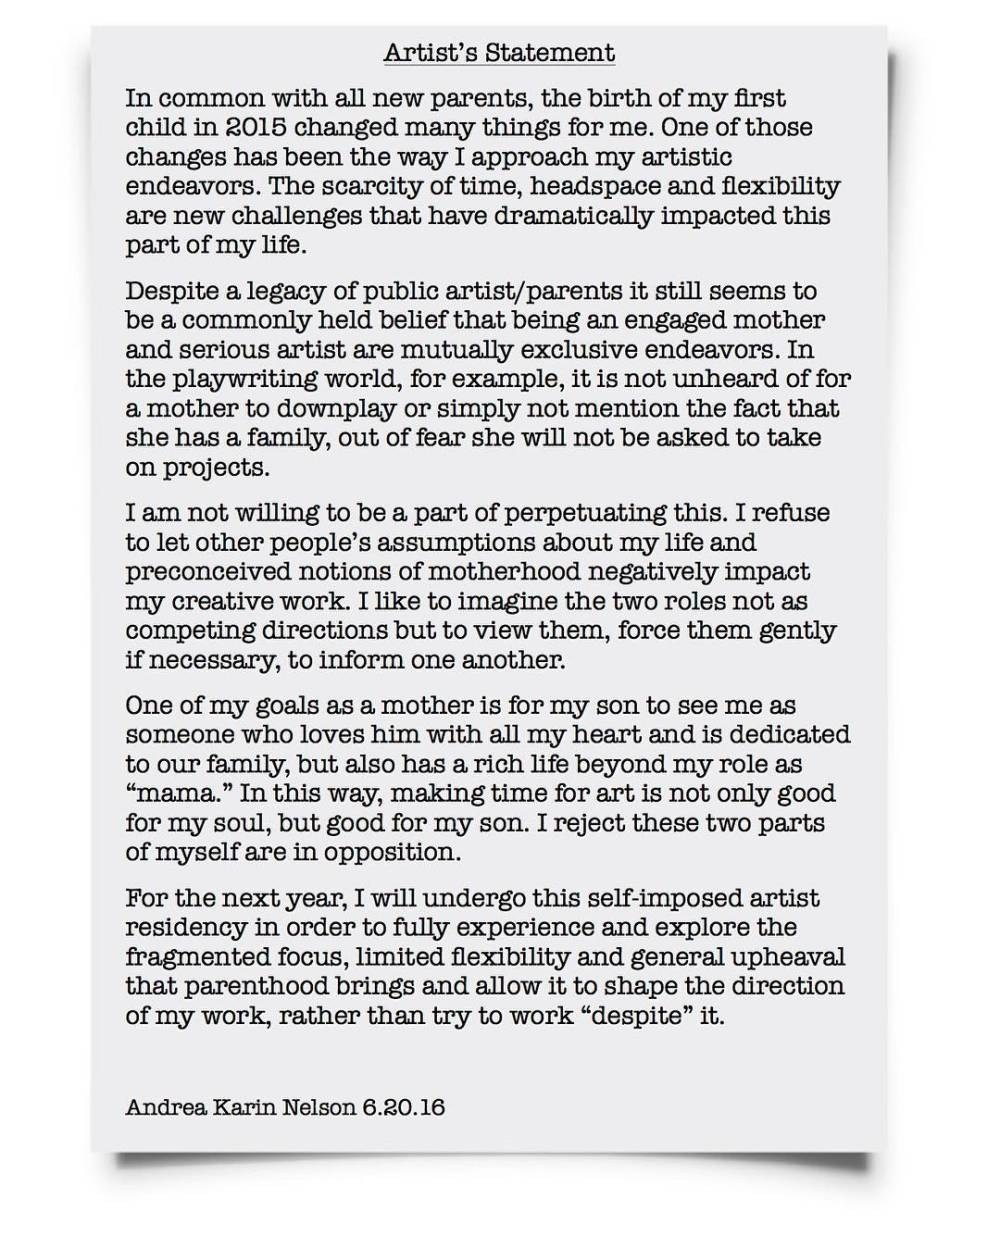 Andrea's Artist Statement for her Artist's Residency in Motherhood.